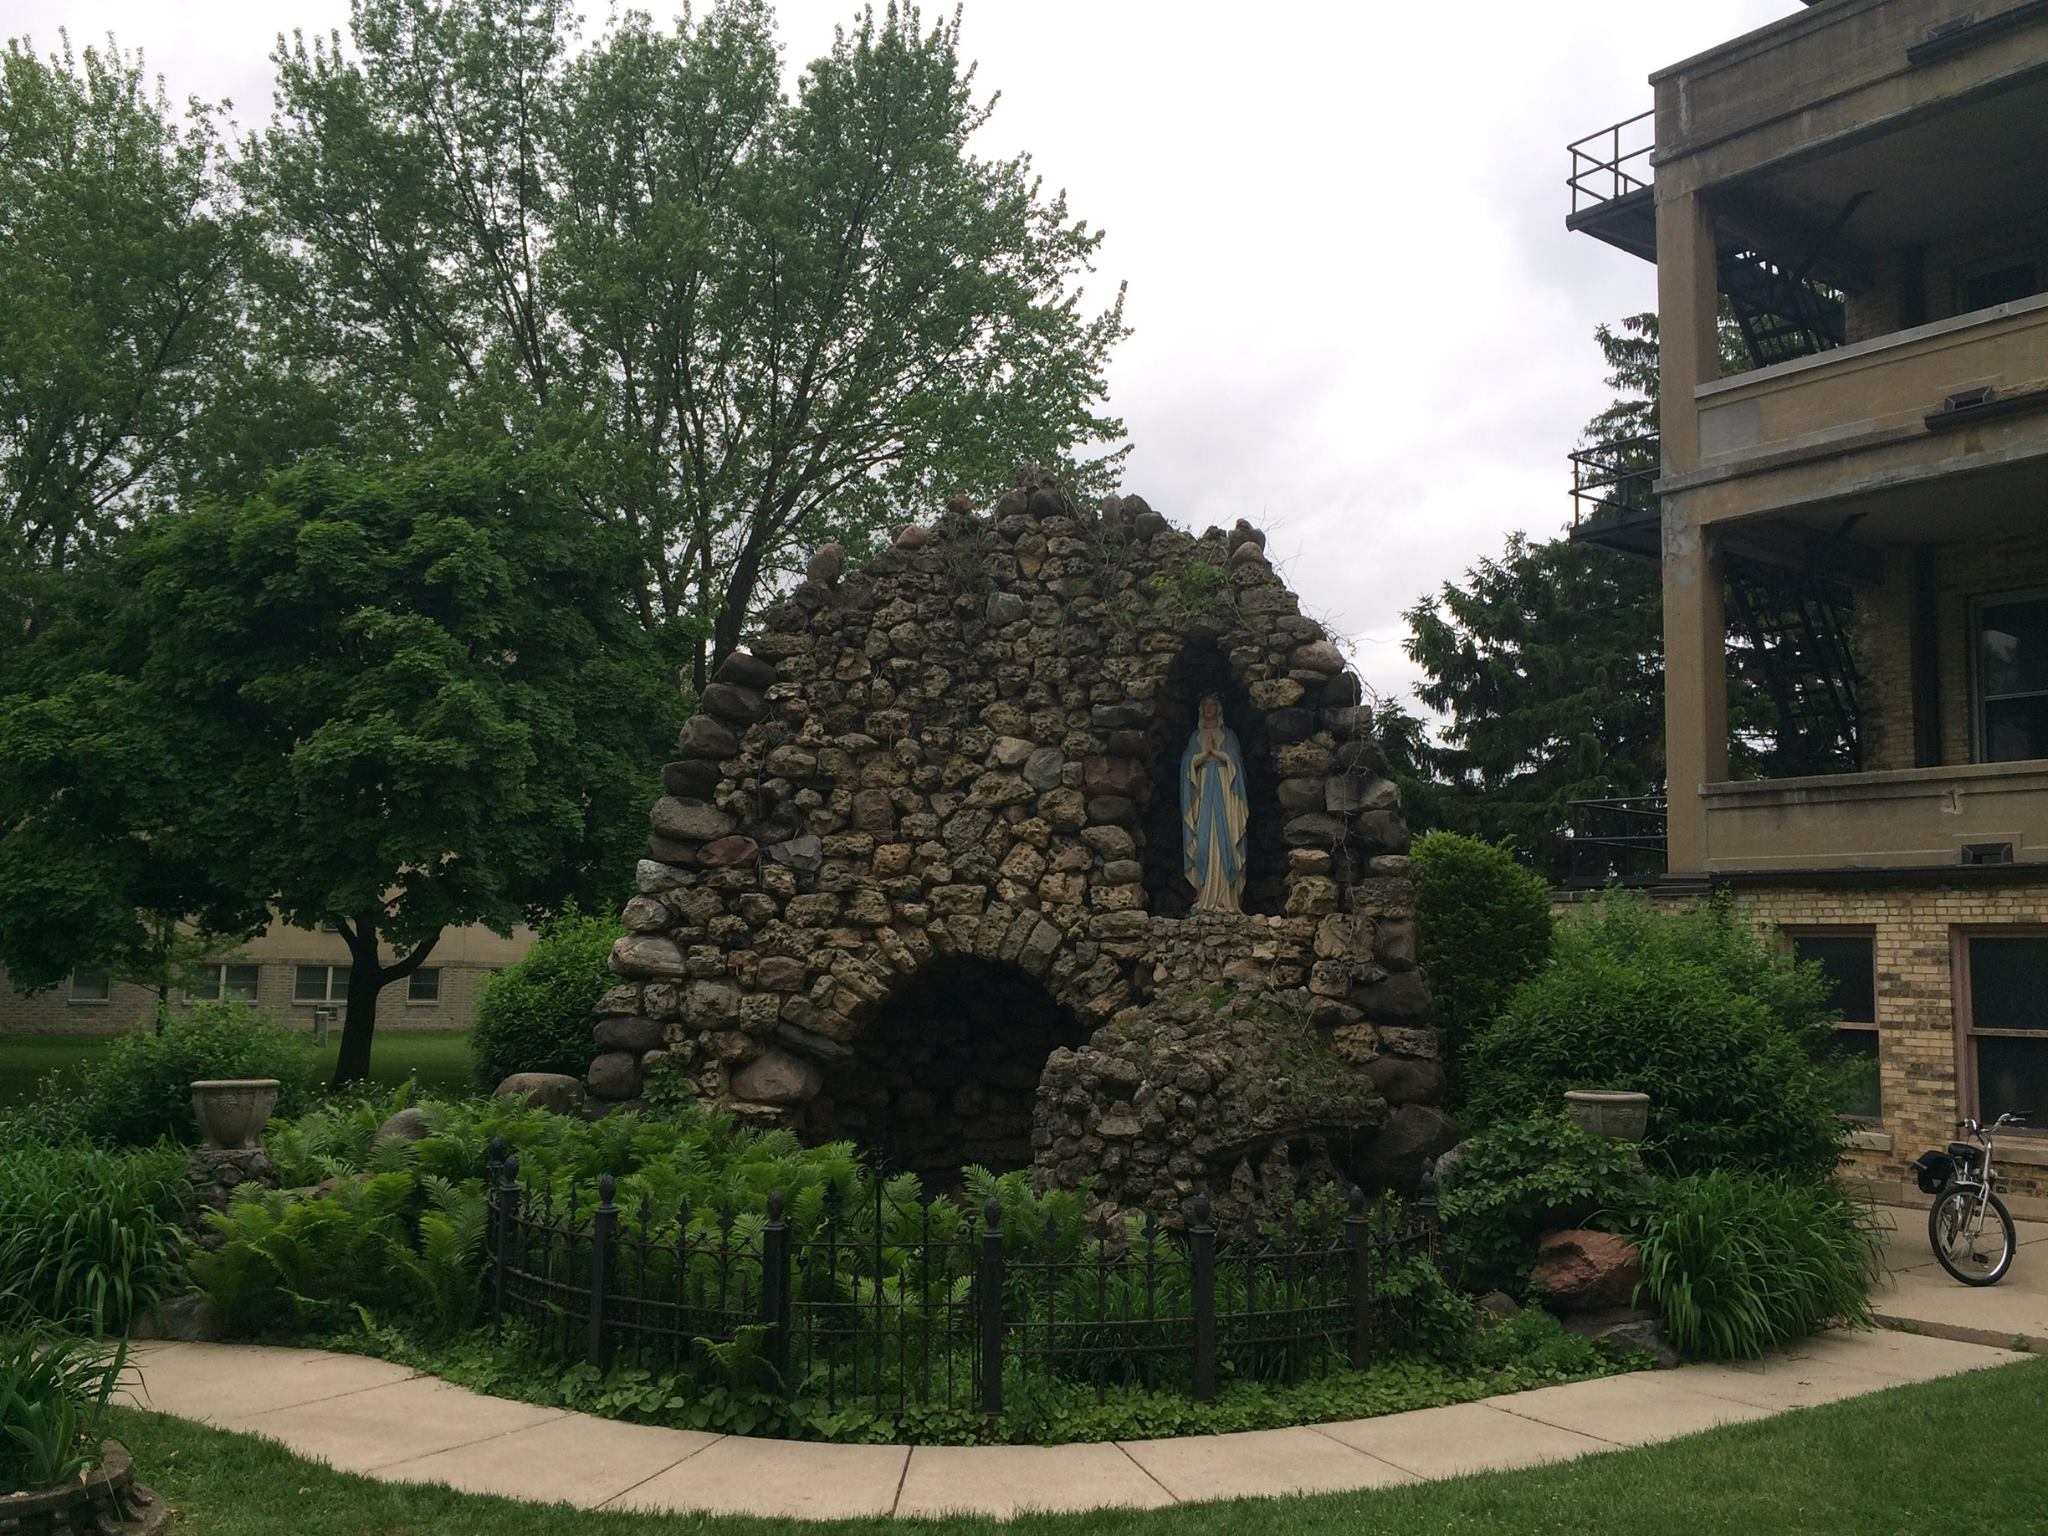 Milwaukee writers will remember the grotto at the Marian Center